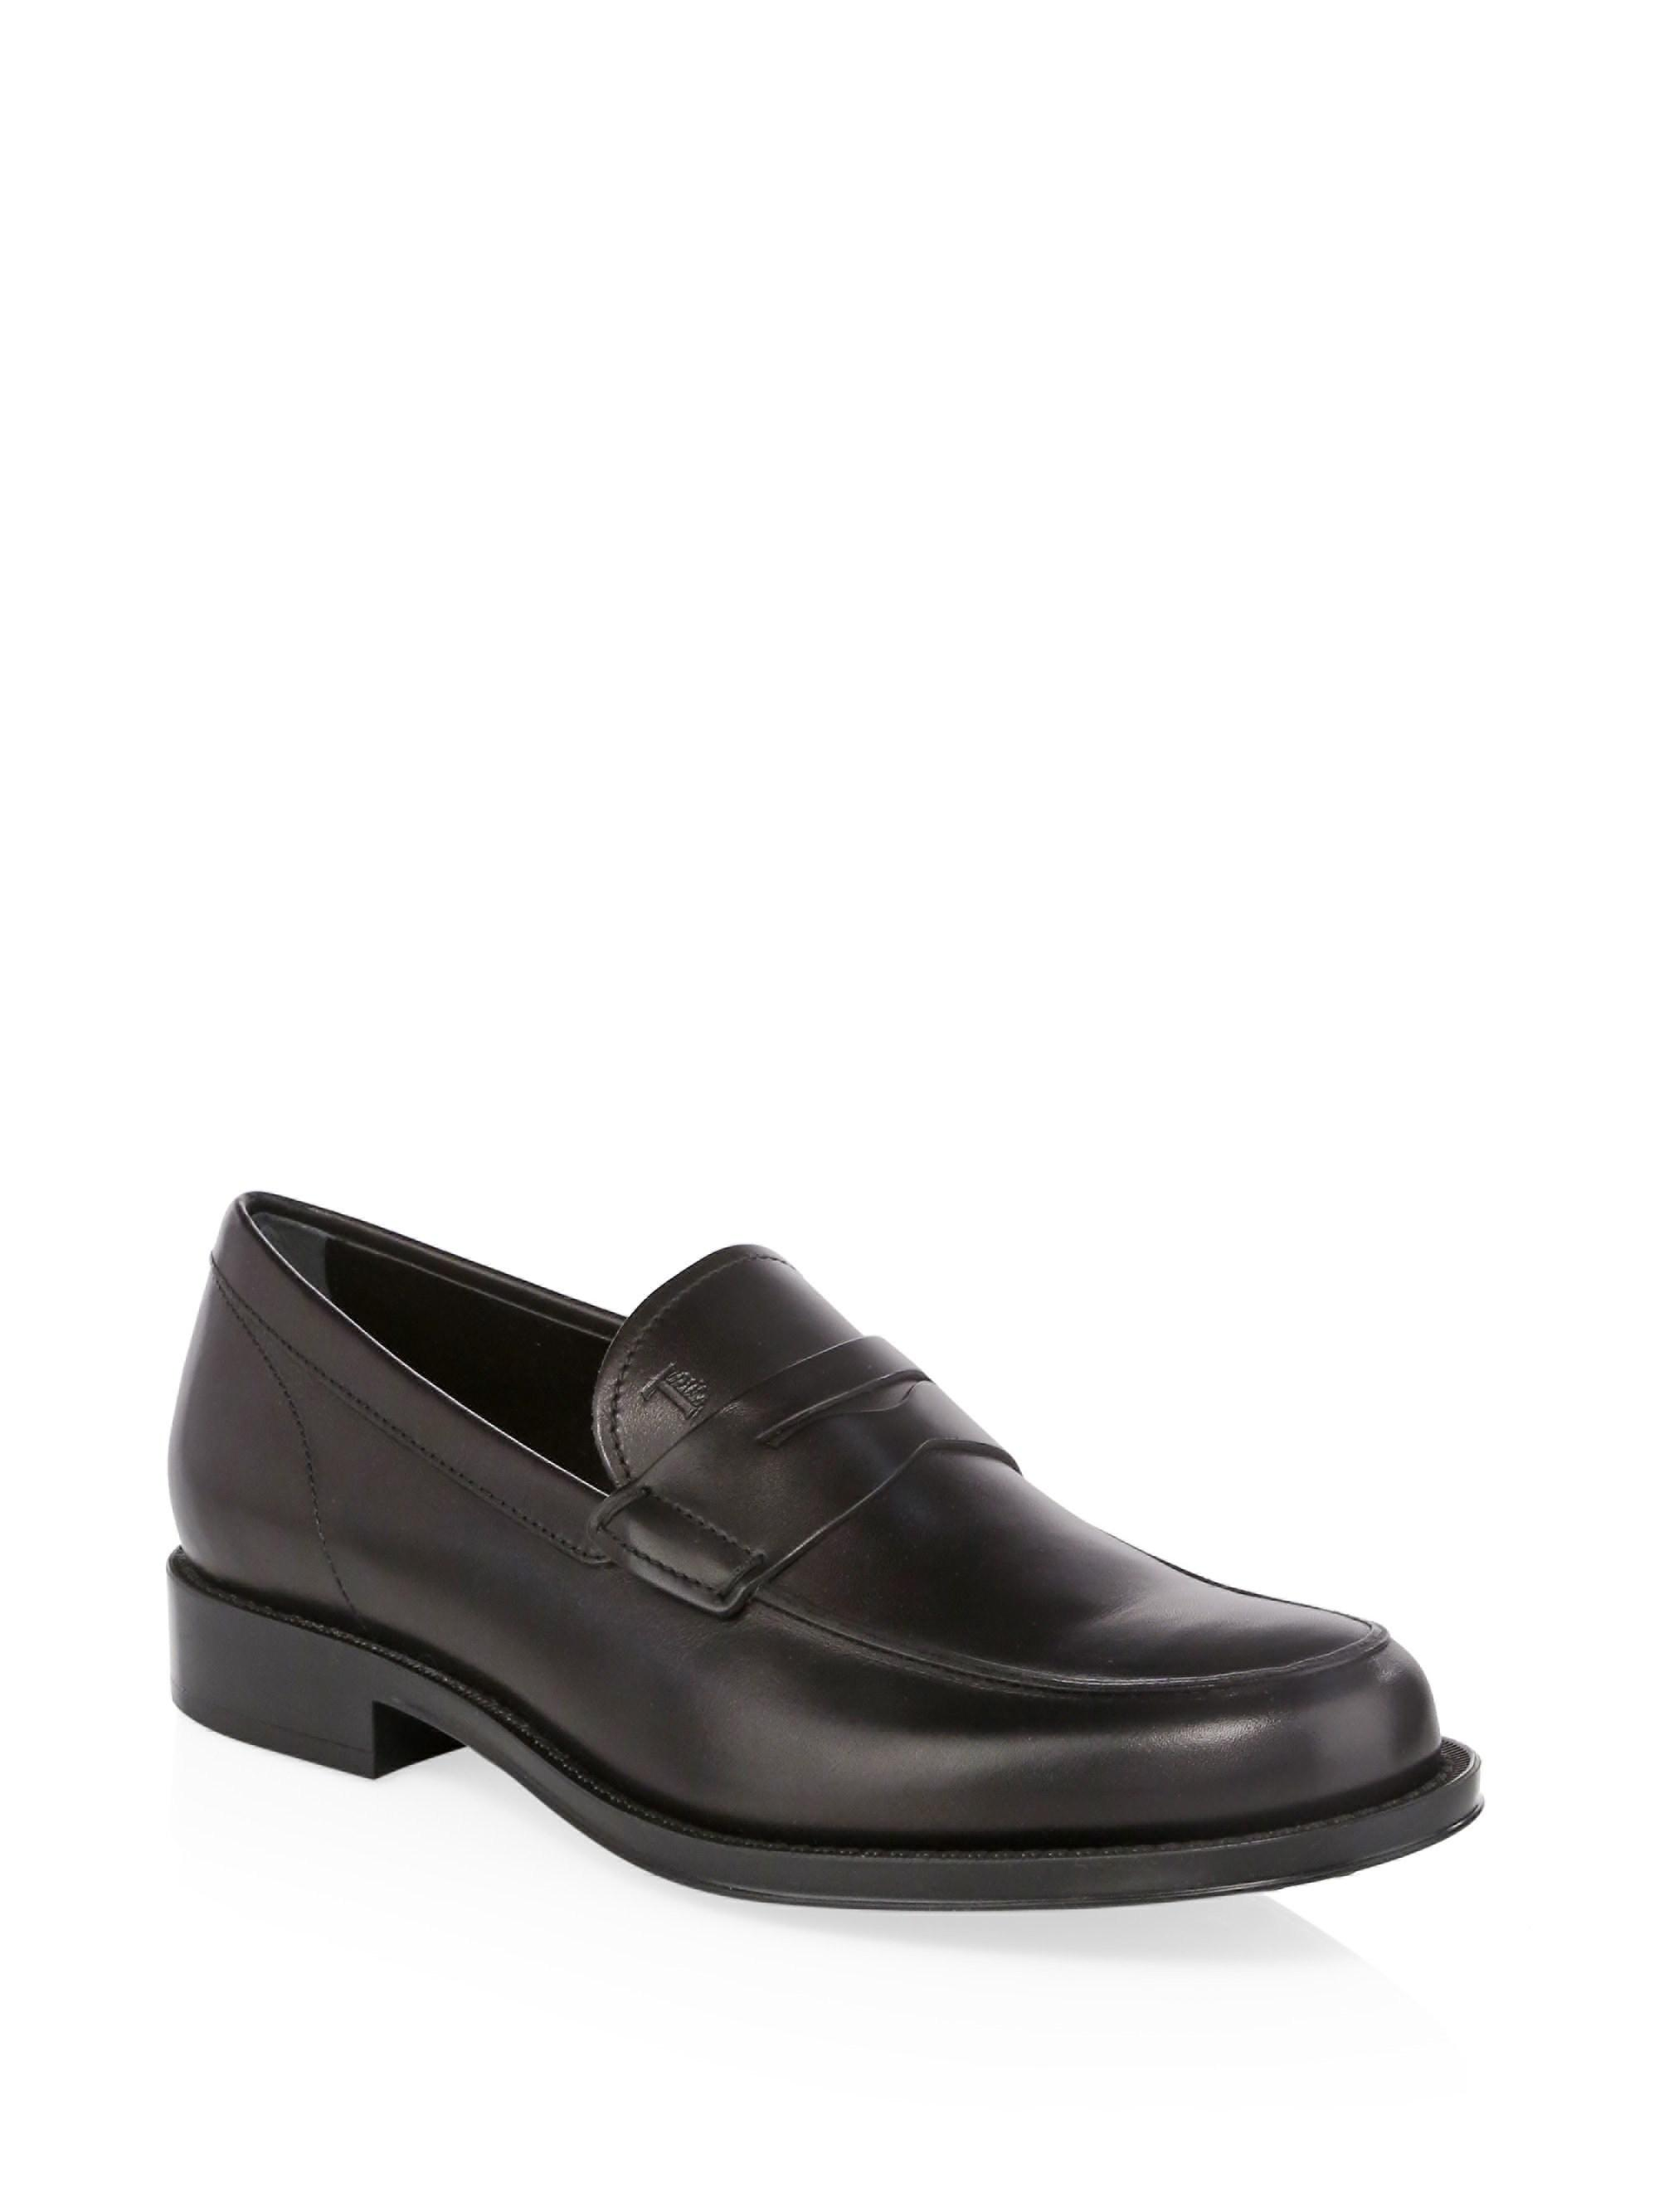 68f9f77bf46 Tod s Leather Penny Loafers in Black for Men - Lyst